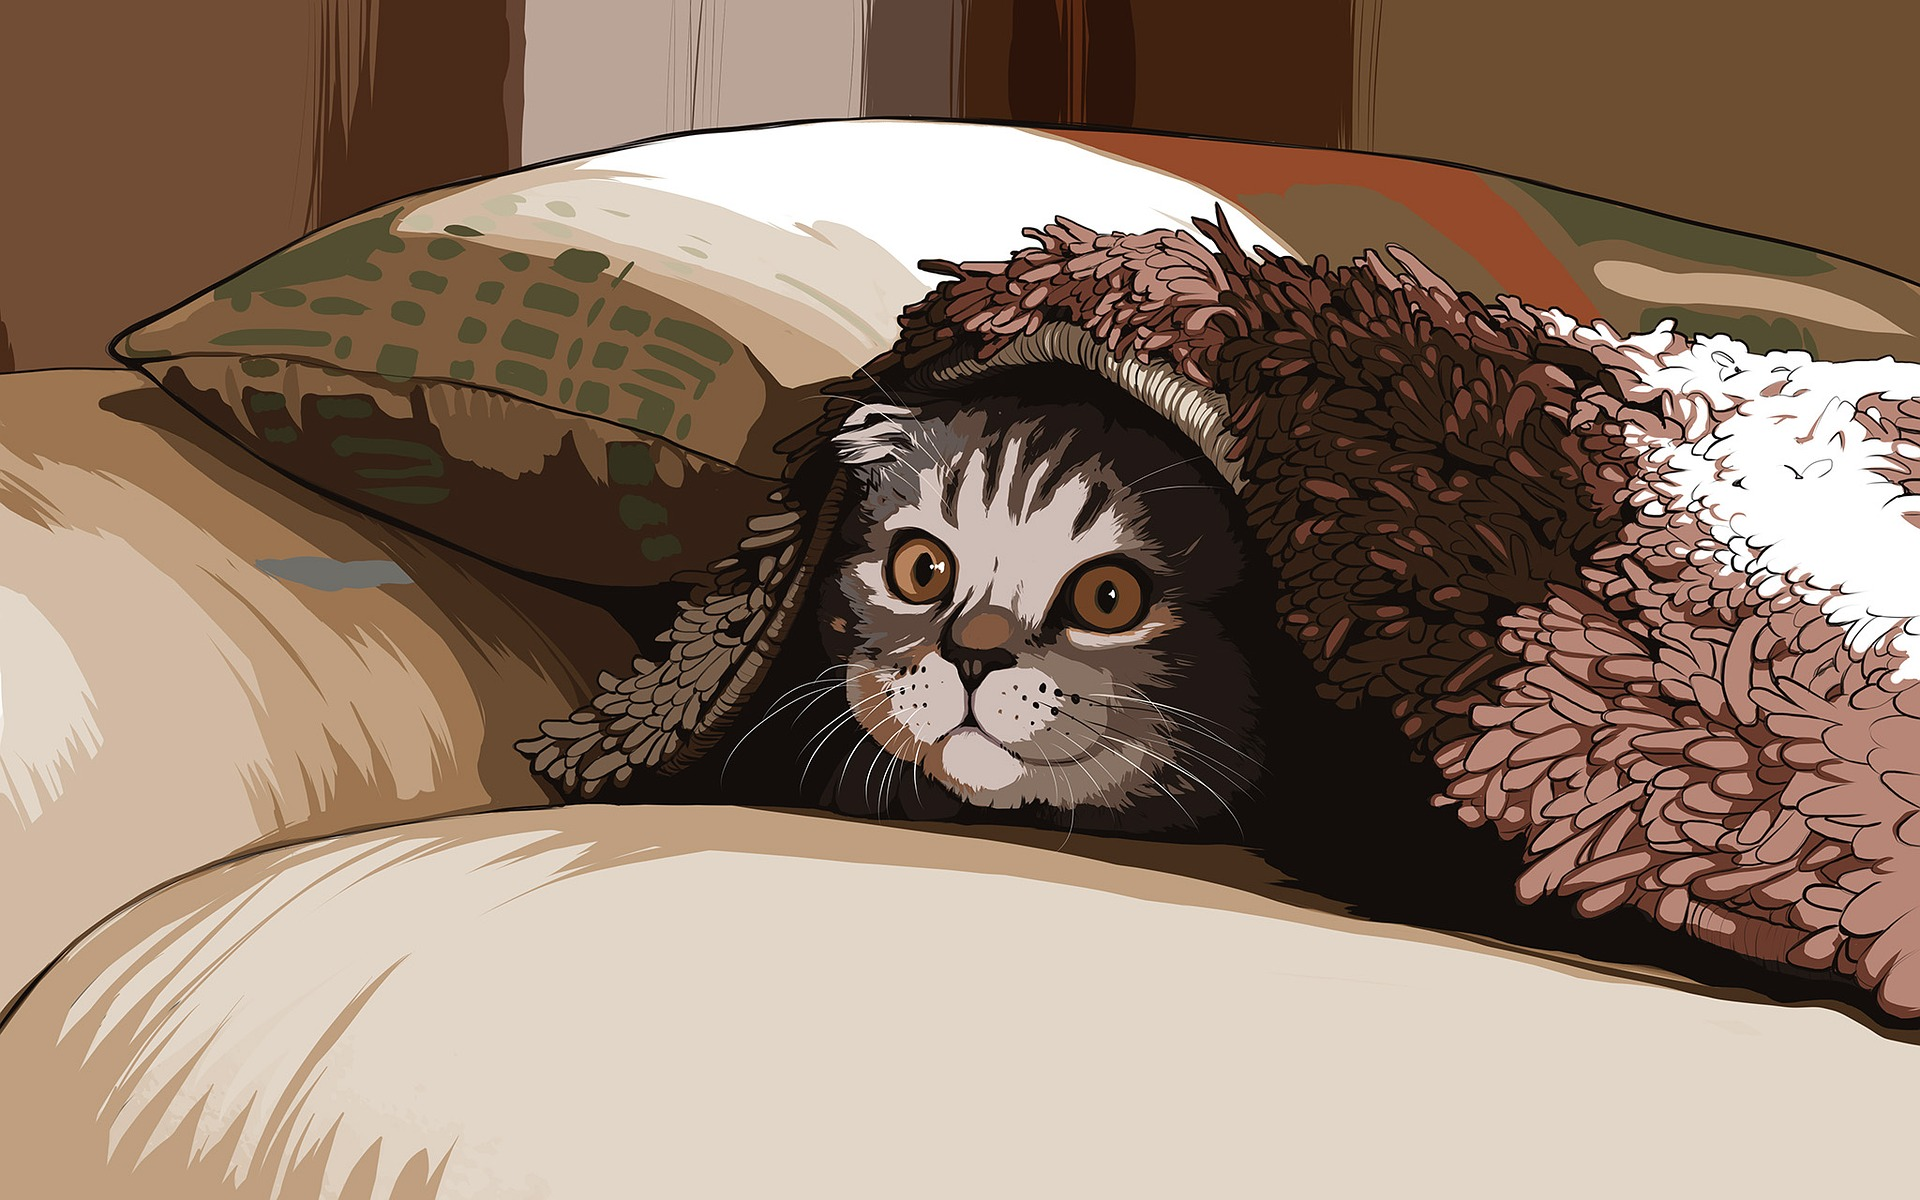 cute cat peeking out from under a blanket; illustration